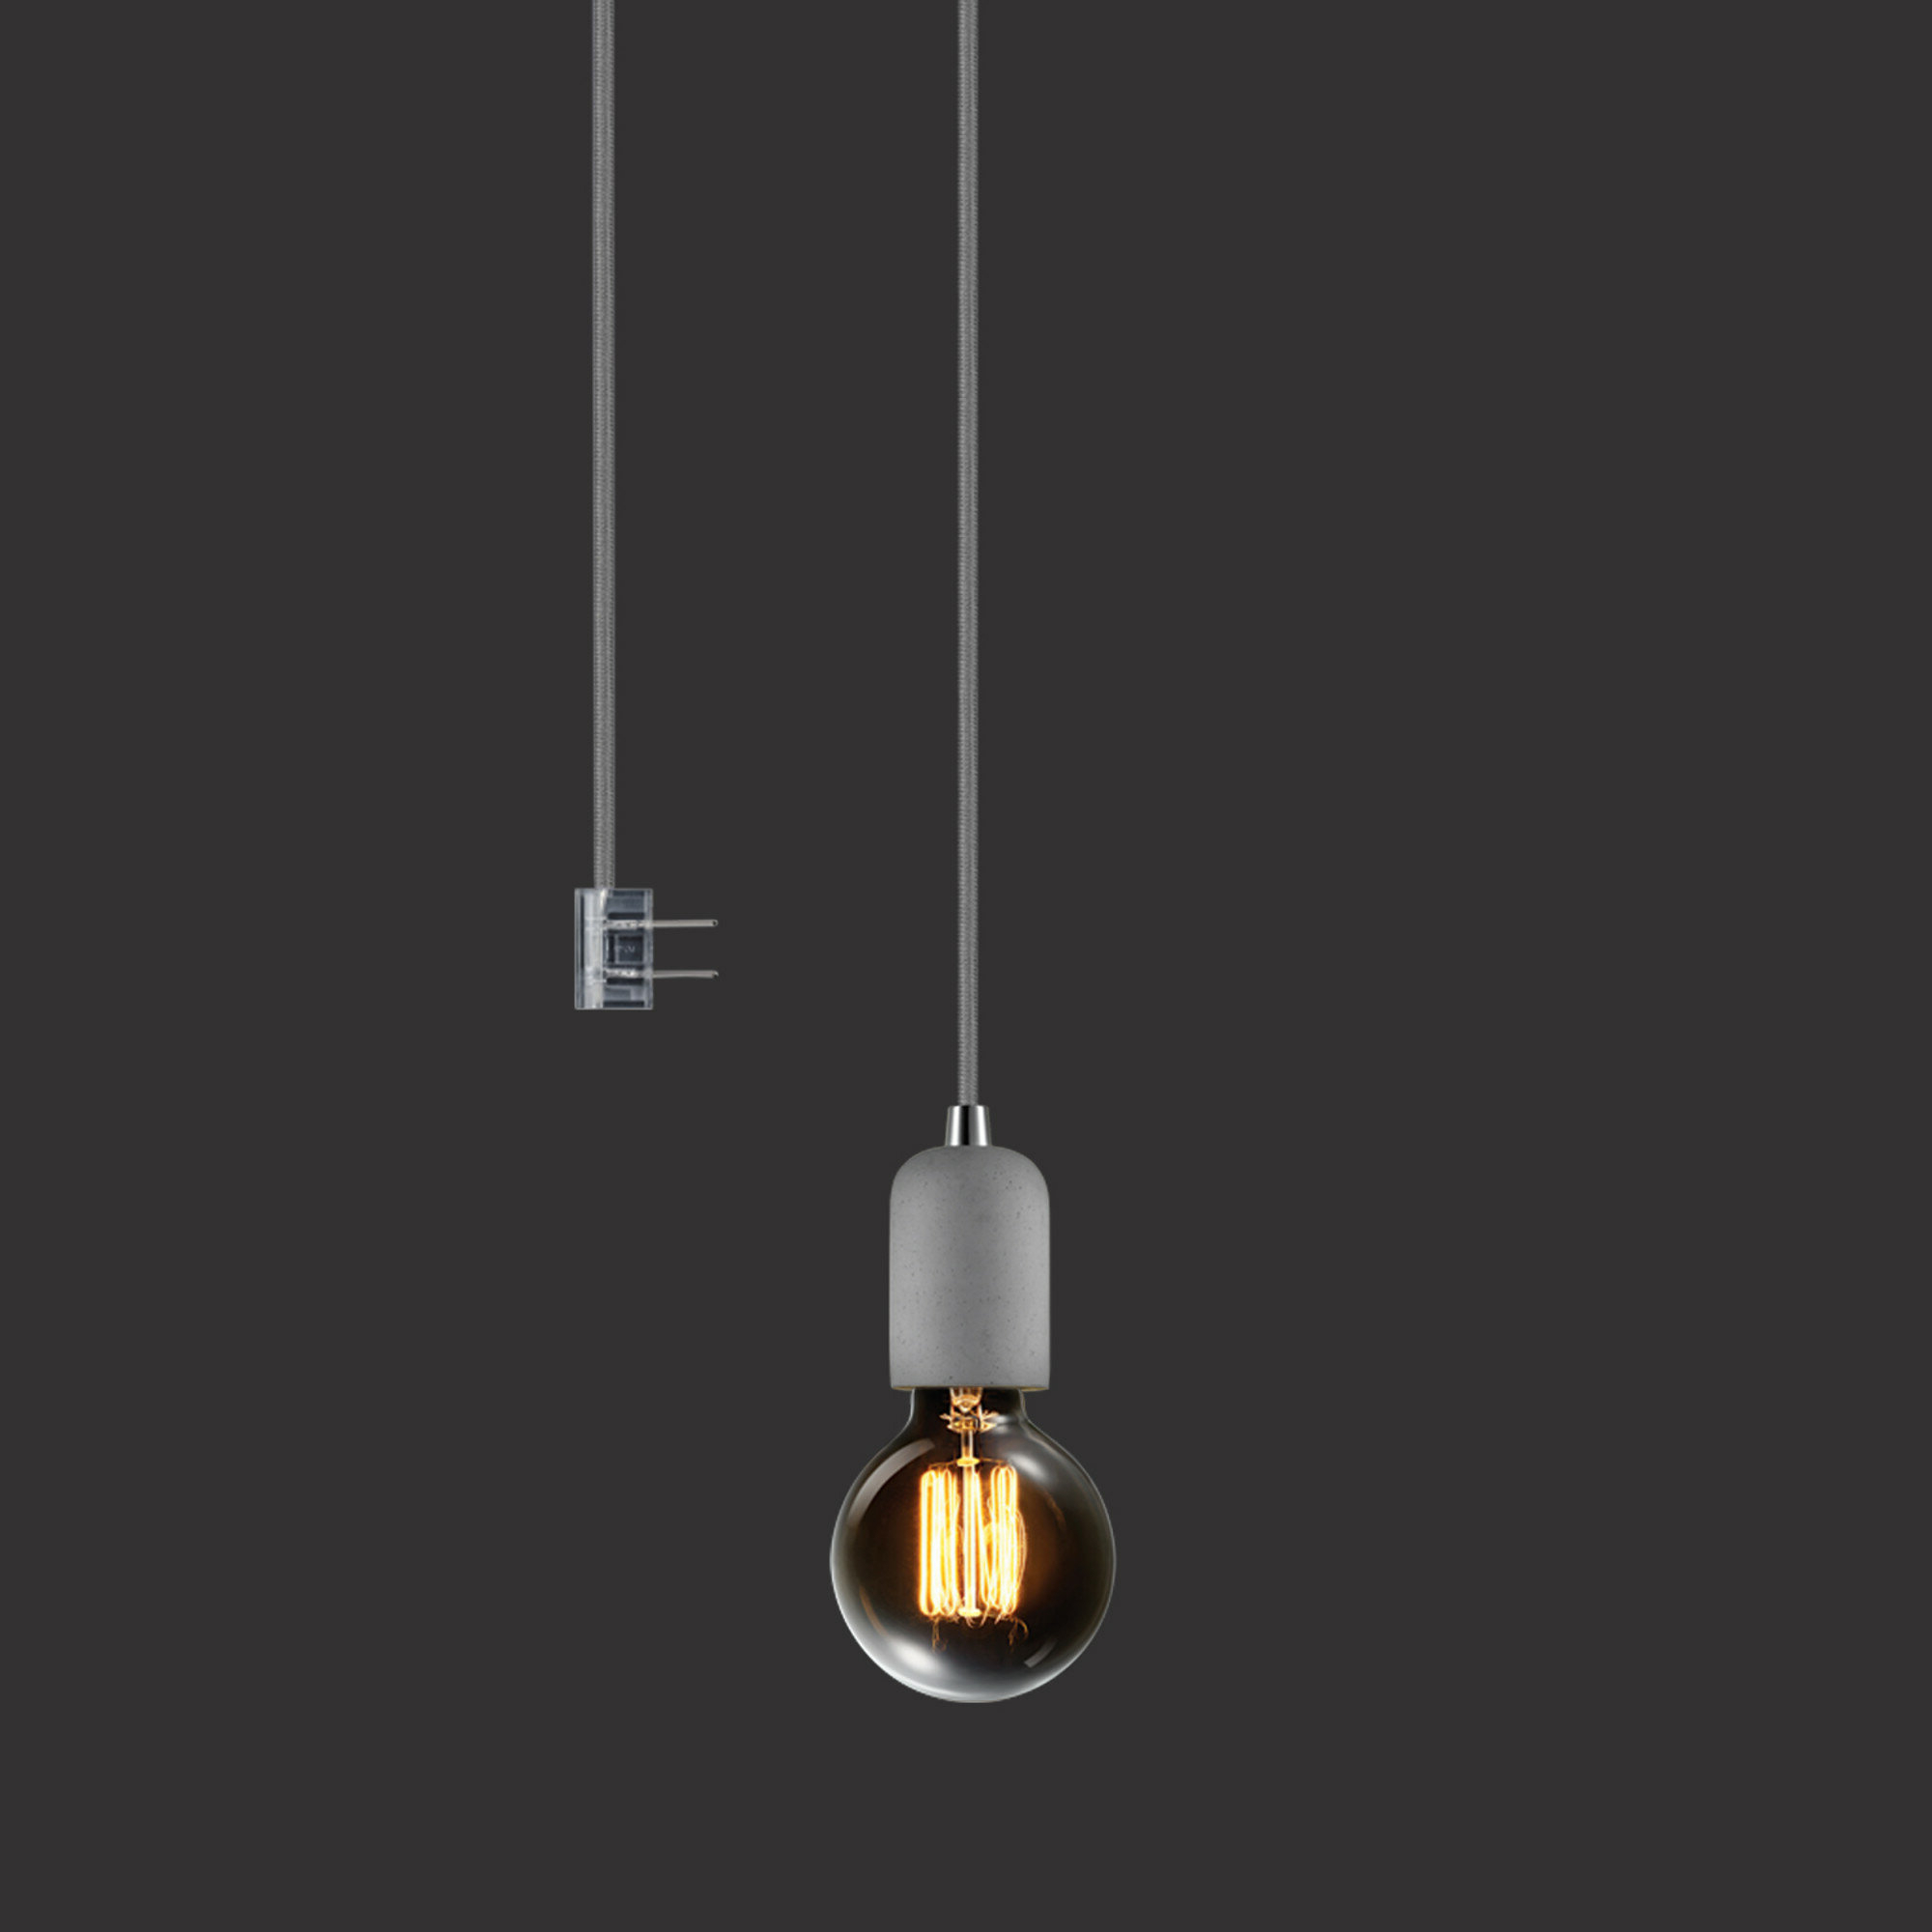 Newest Bryker 1 Light Single Bulb Pendants Pertaining To Clarksdale 1 Light Bulb Pendant (View 14 of 20)